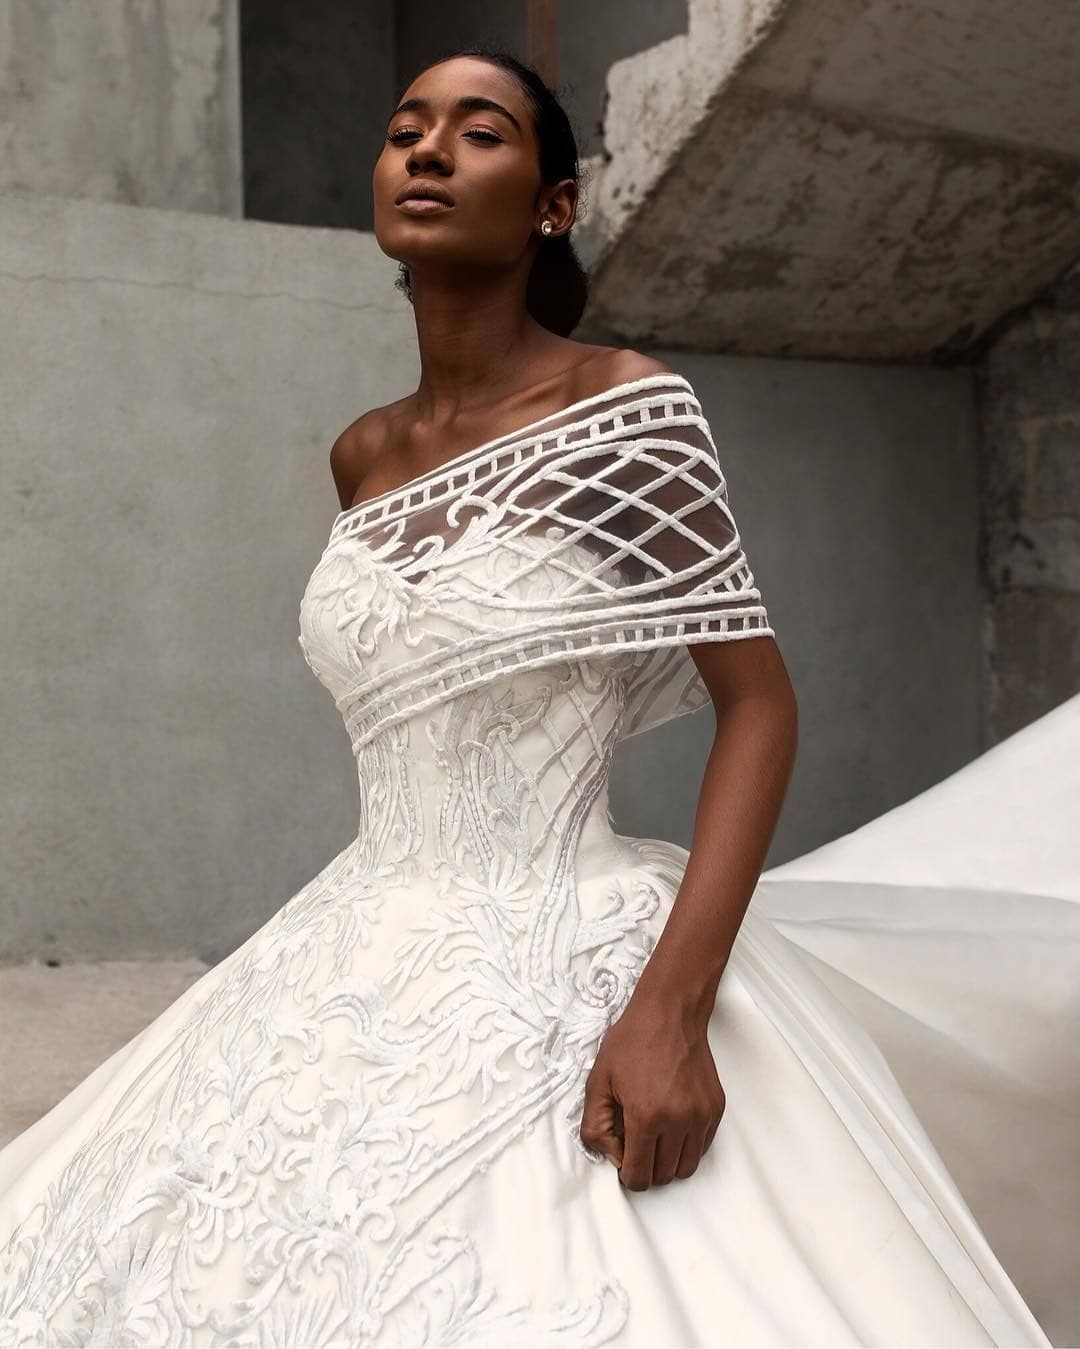 Andrea Iyamah. Follow us @ SIGNATURE BRIDE on Instagram and